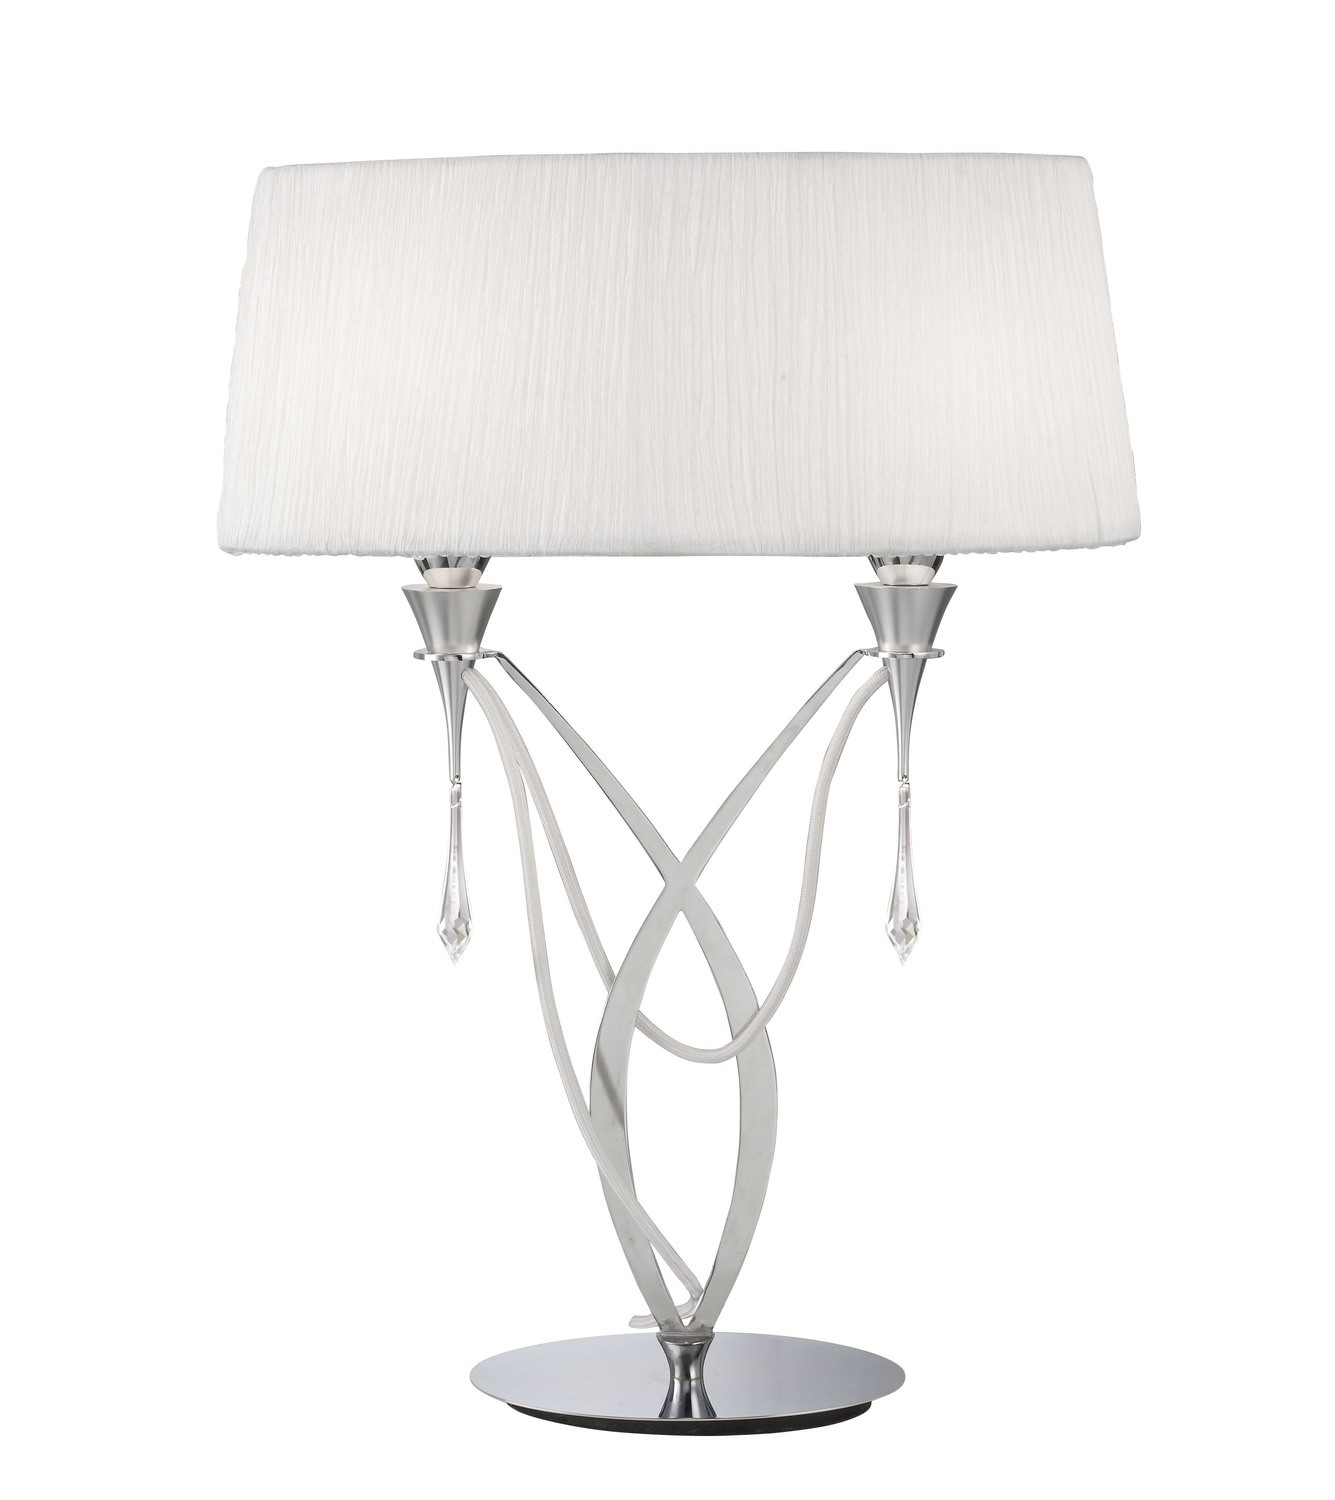 Lucca Table Lamp 2 Light E27 Large, Polished Chrome With White Shade & Clear Crystal